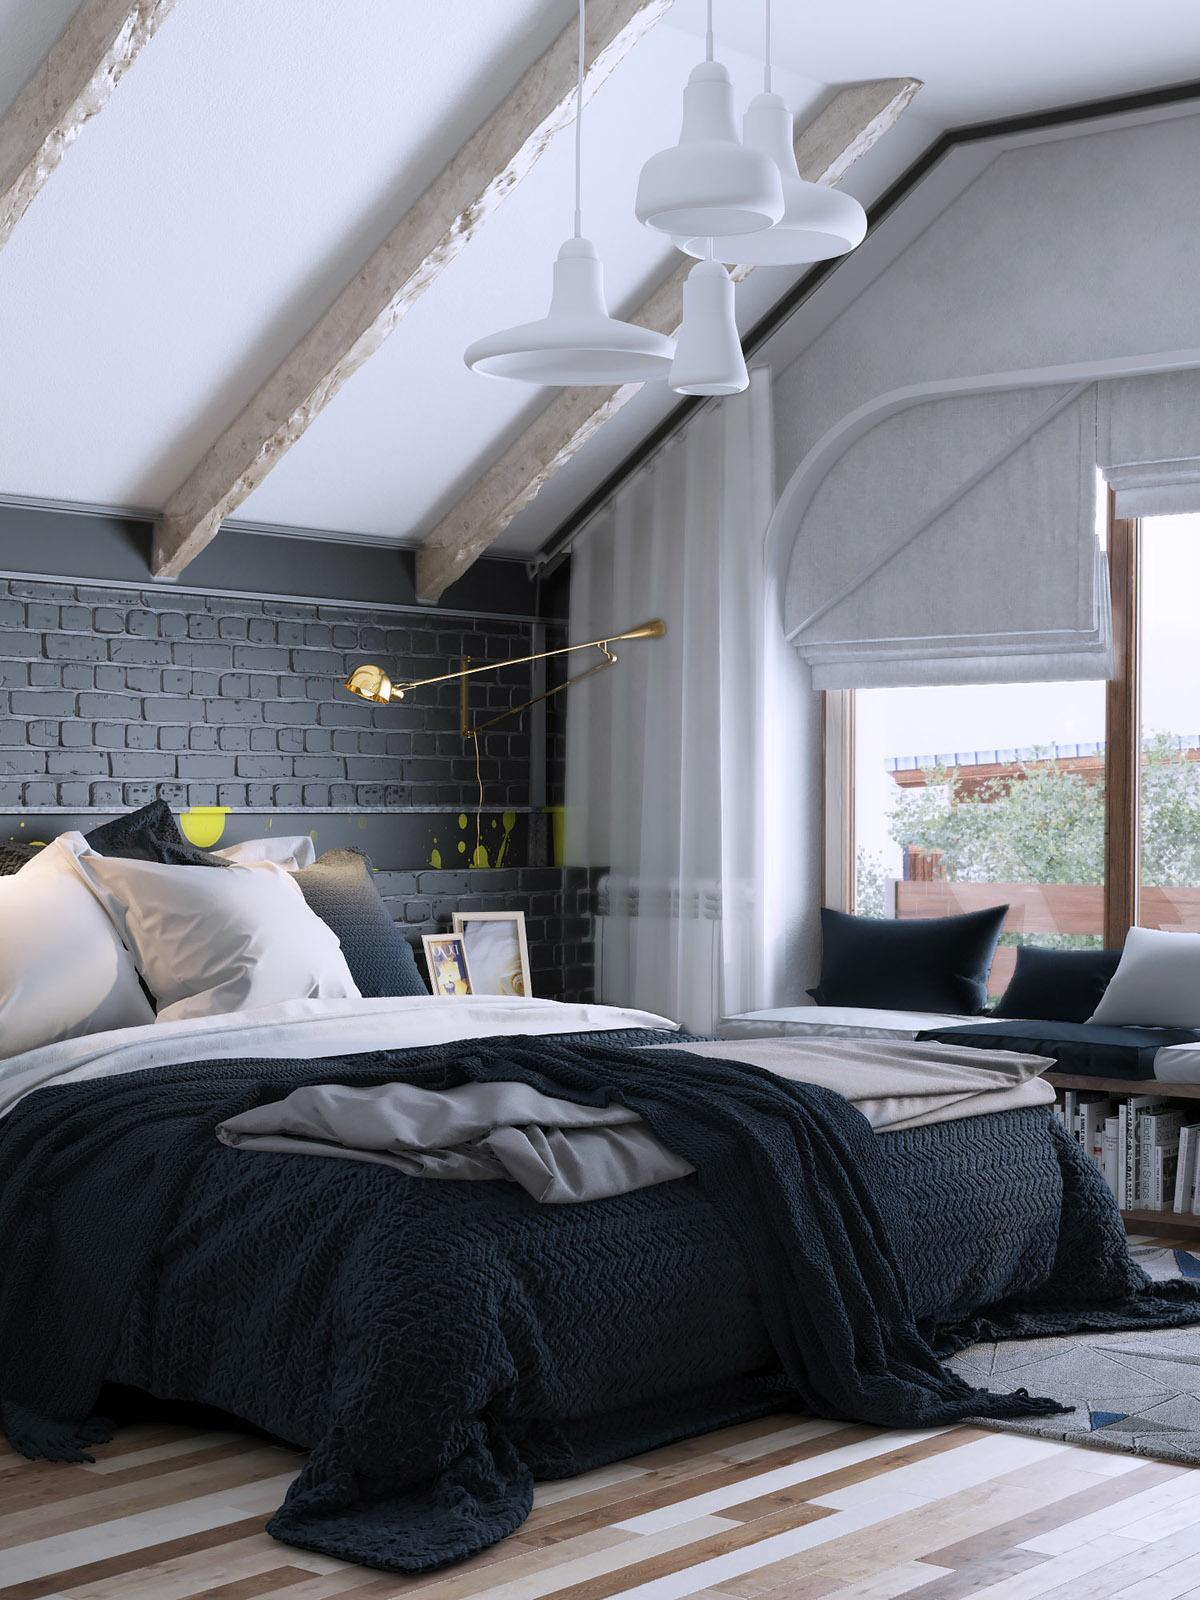 Farbeffekte Wand 6 Creative Bedrooms With Artwork And Diverse Textures